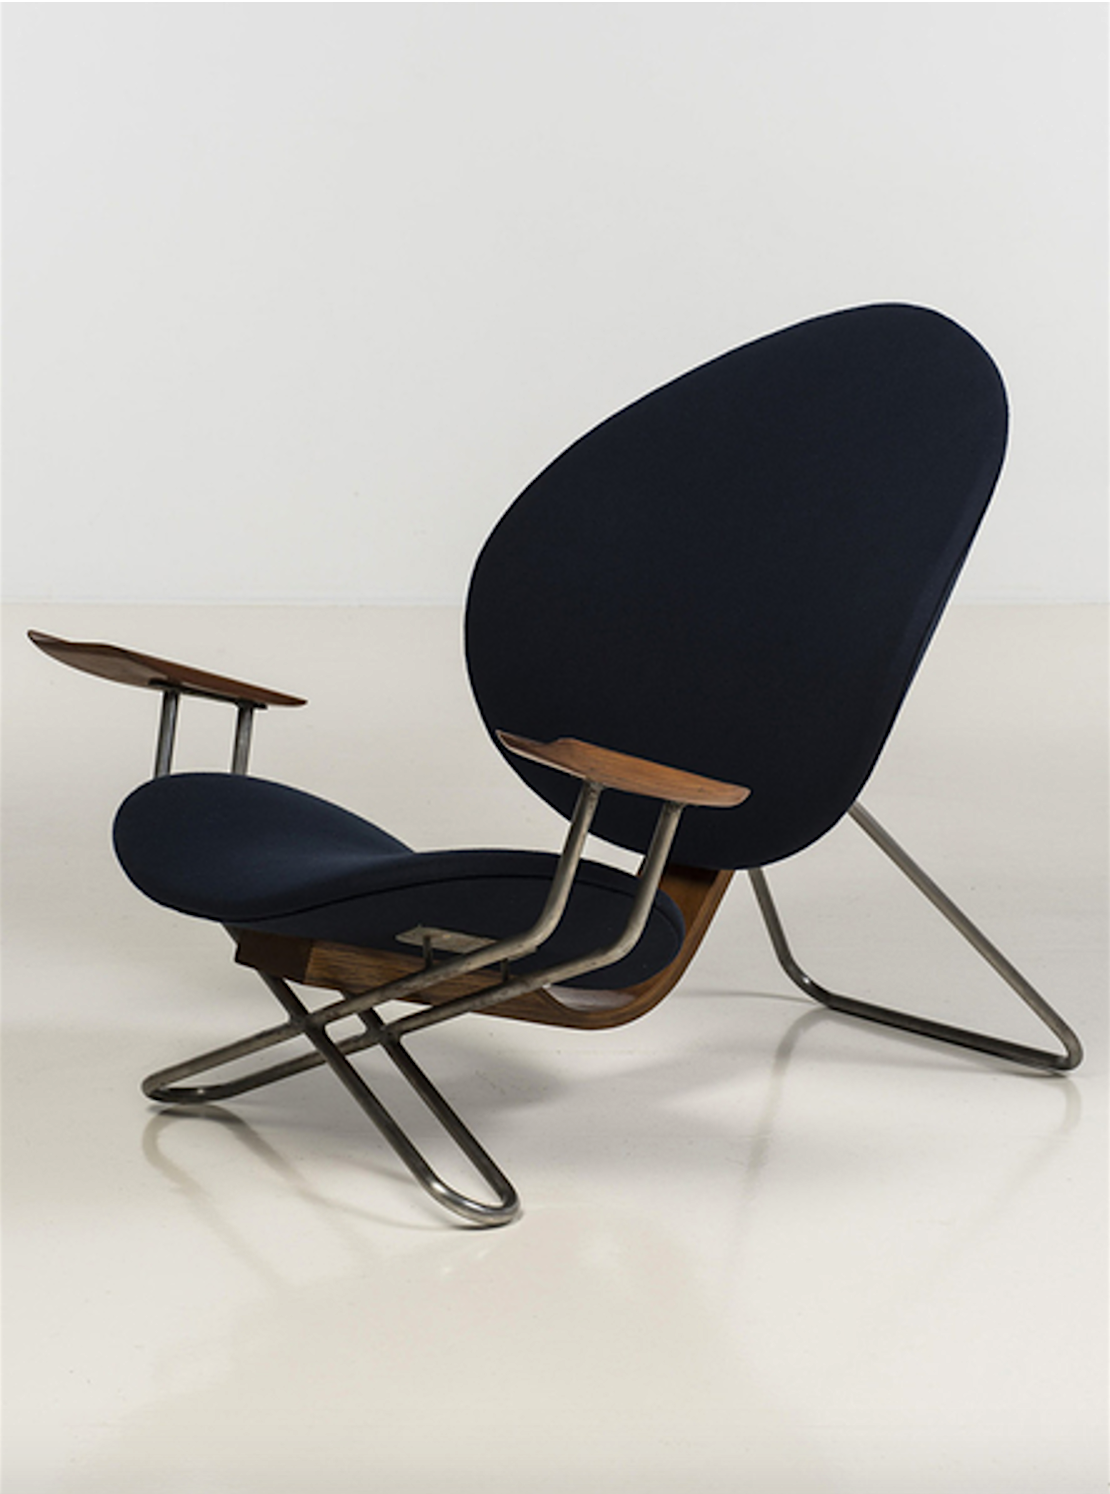 Fauteuil Rocking Chair Design Fauteuil Egg Arne Jacobsen Chair Egg